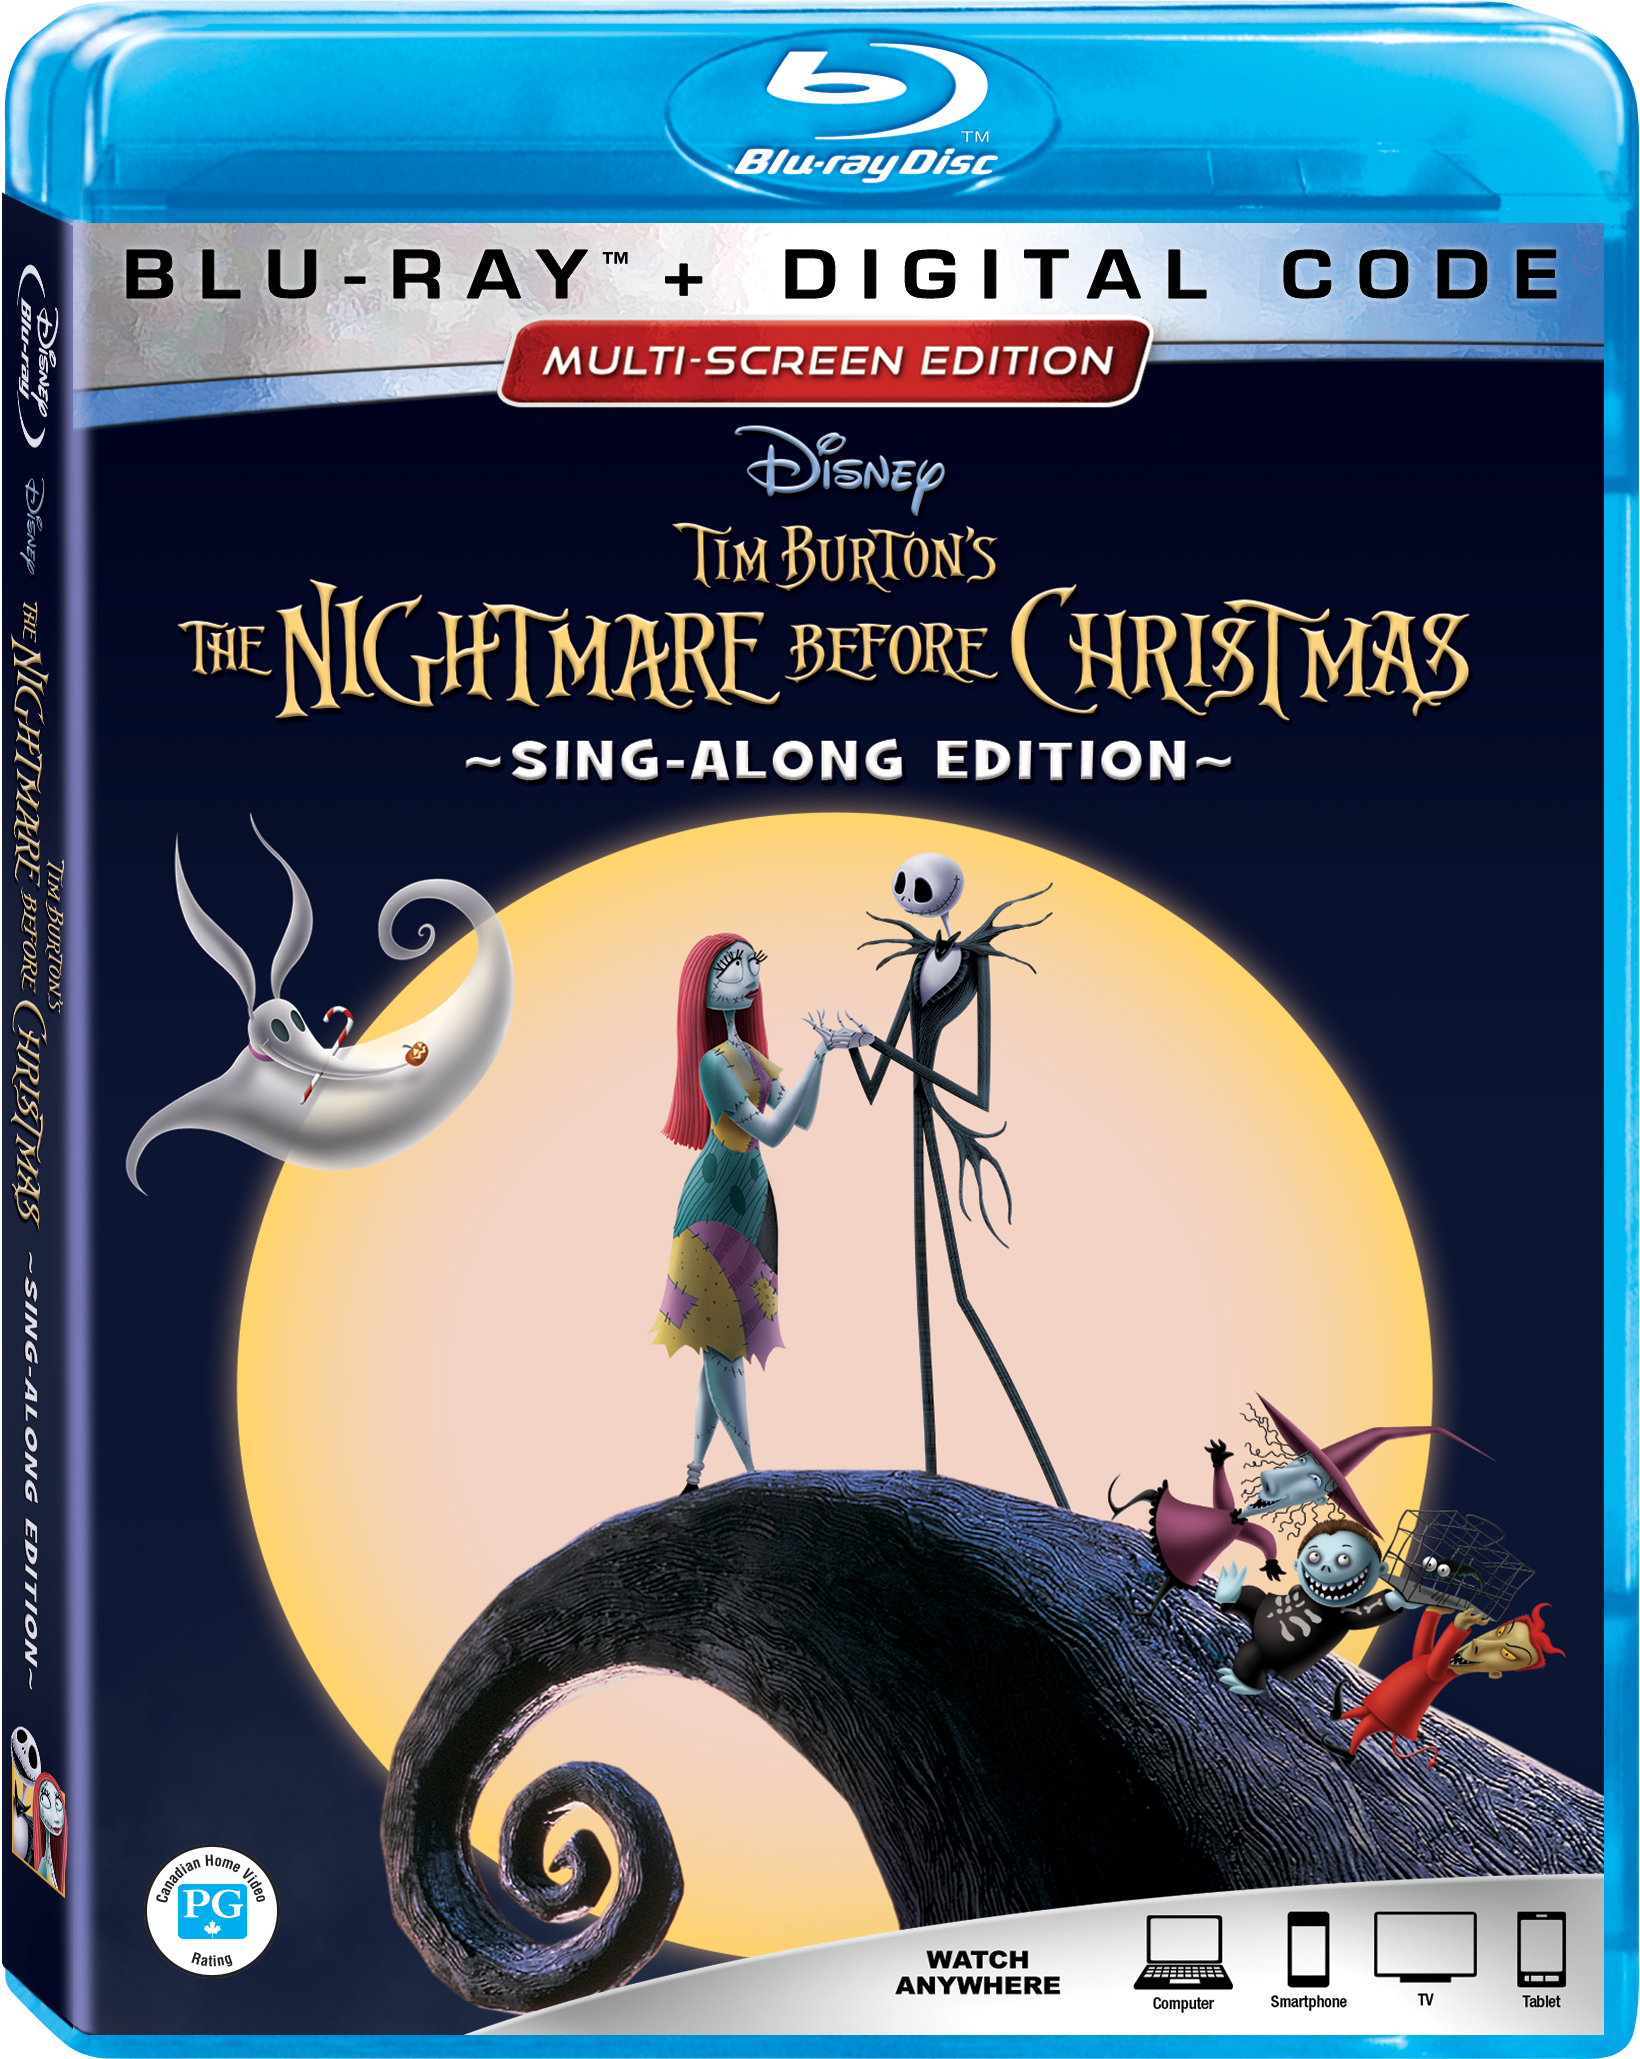 "he Nightmare Before Christmas"" 25th Anniversary Edition Arrives on Digital & Blu-ray September 2"